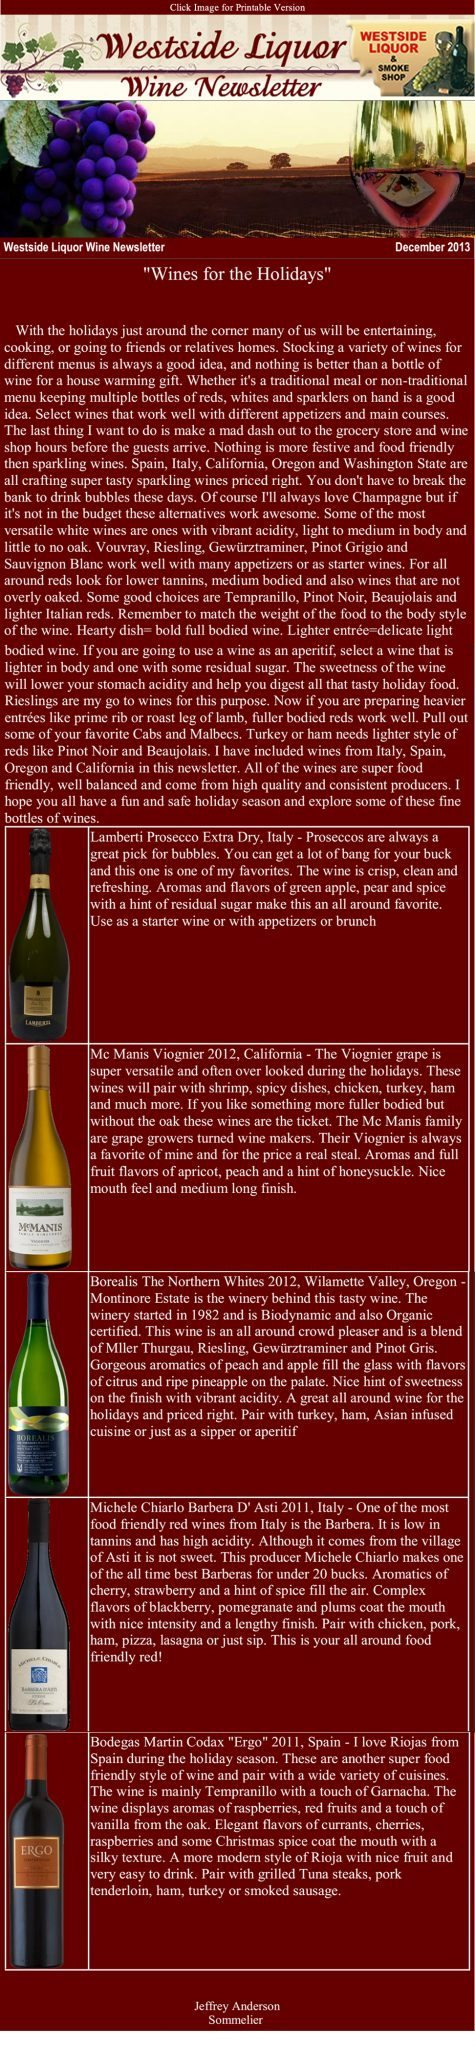 December 2013 Wine Newsletter